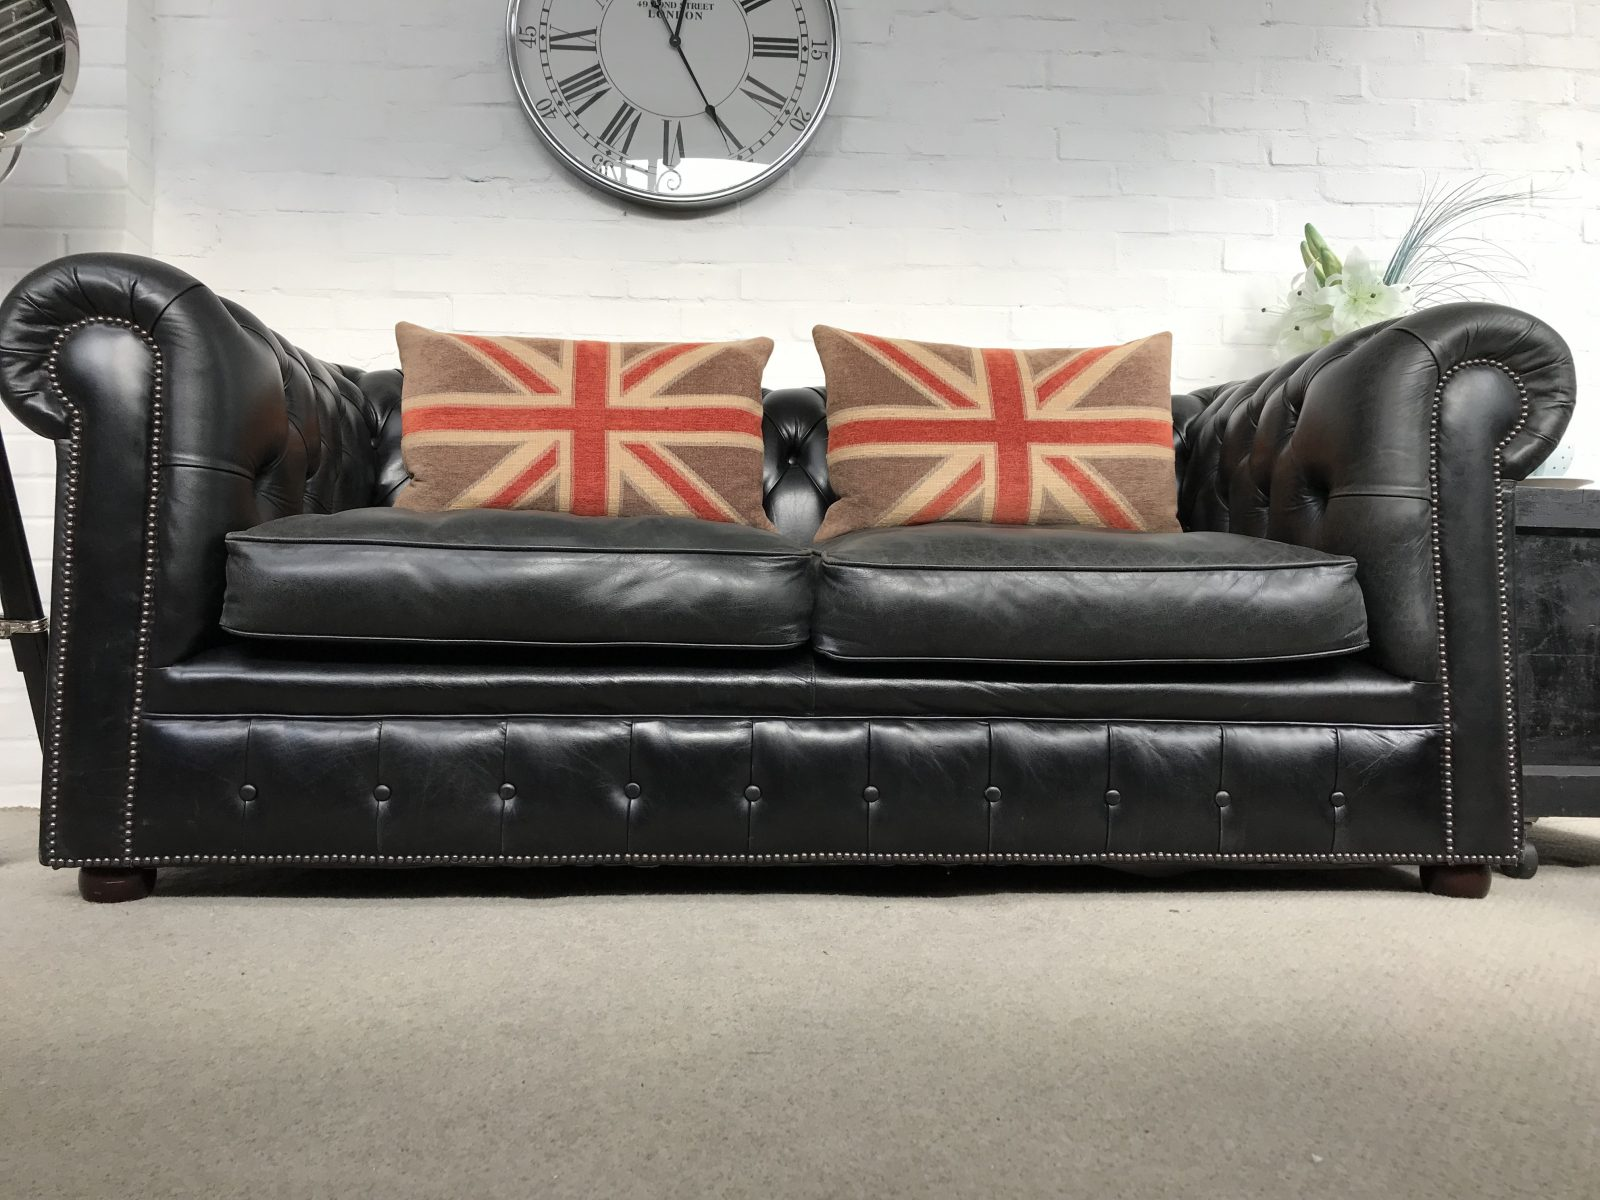 Fabulous Black 3 Seater Chesterfield Sofa By Roche Design.